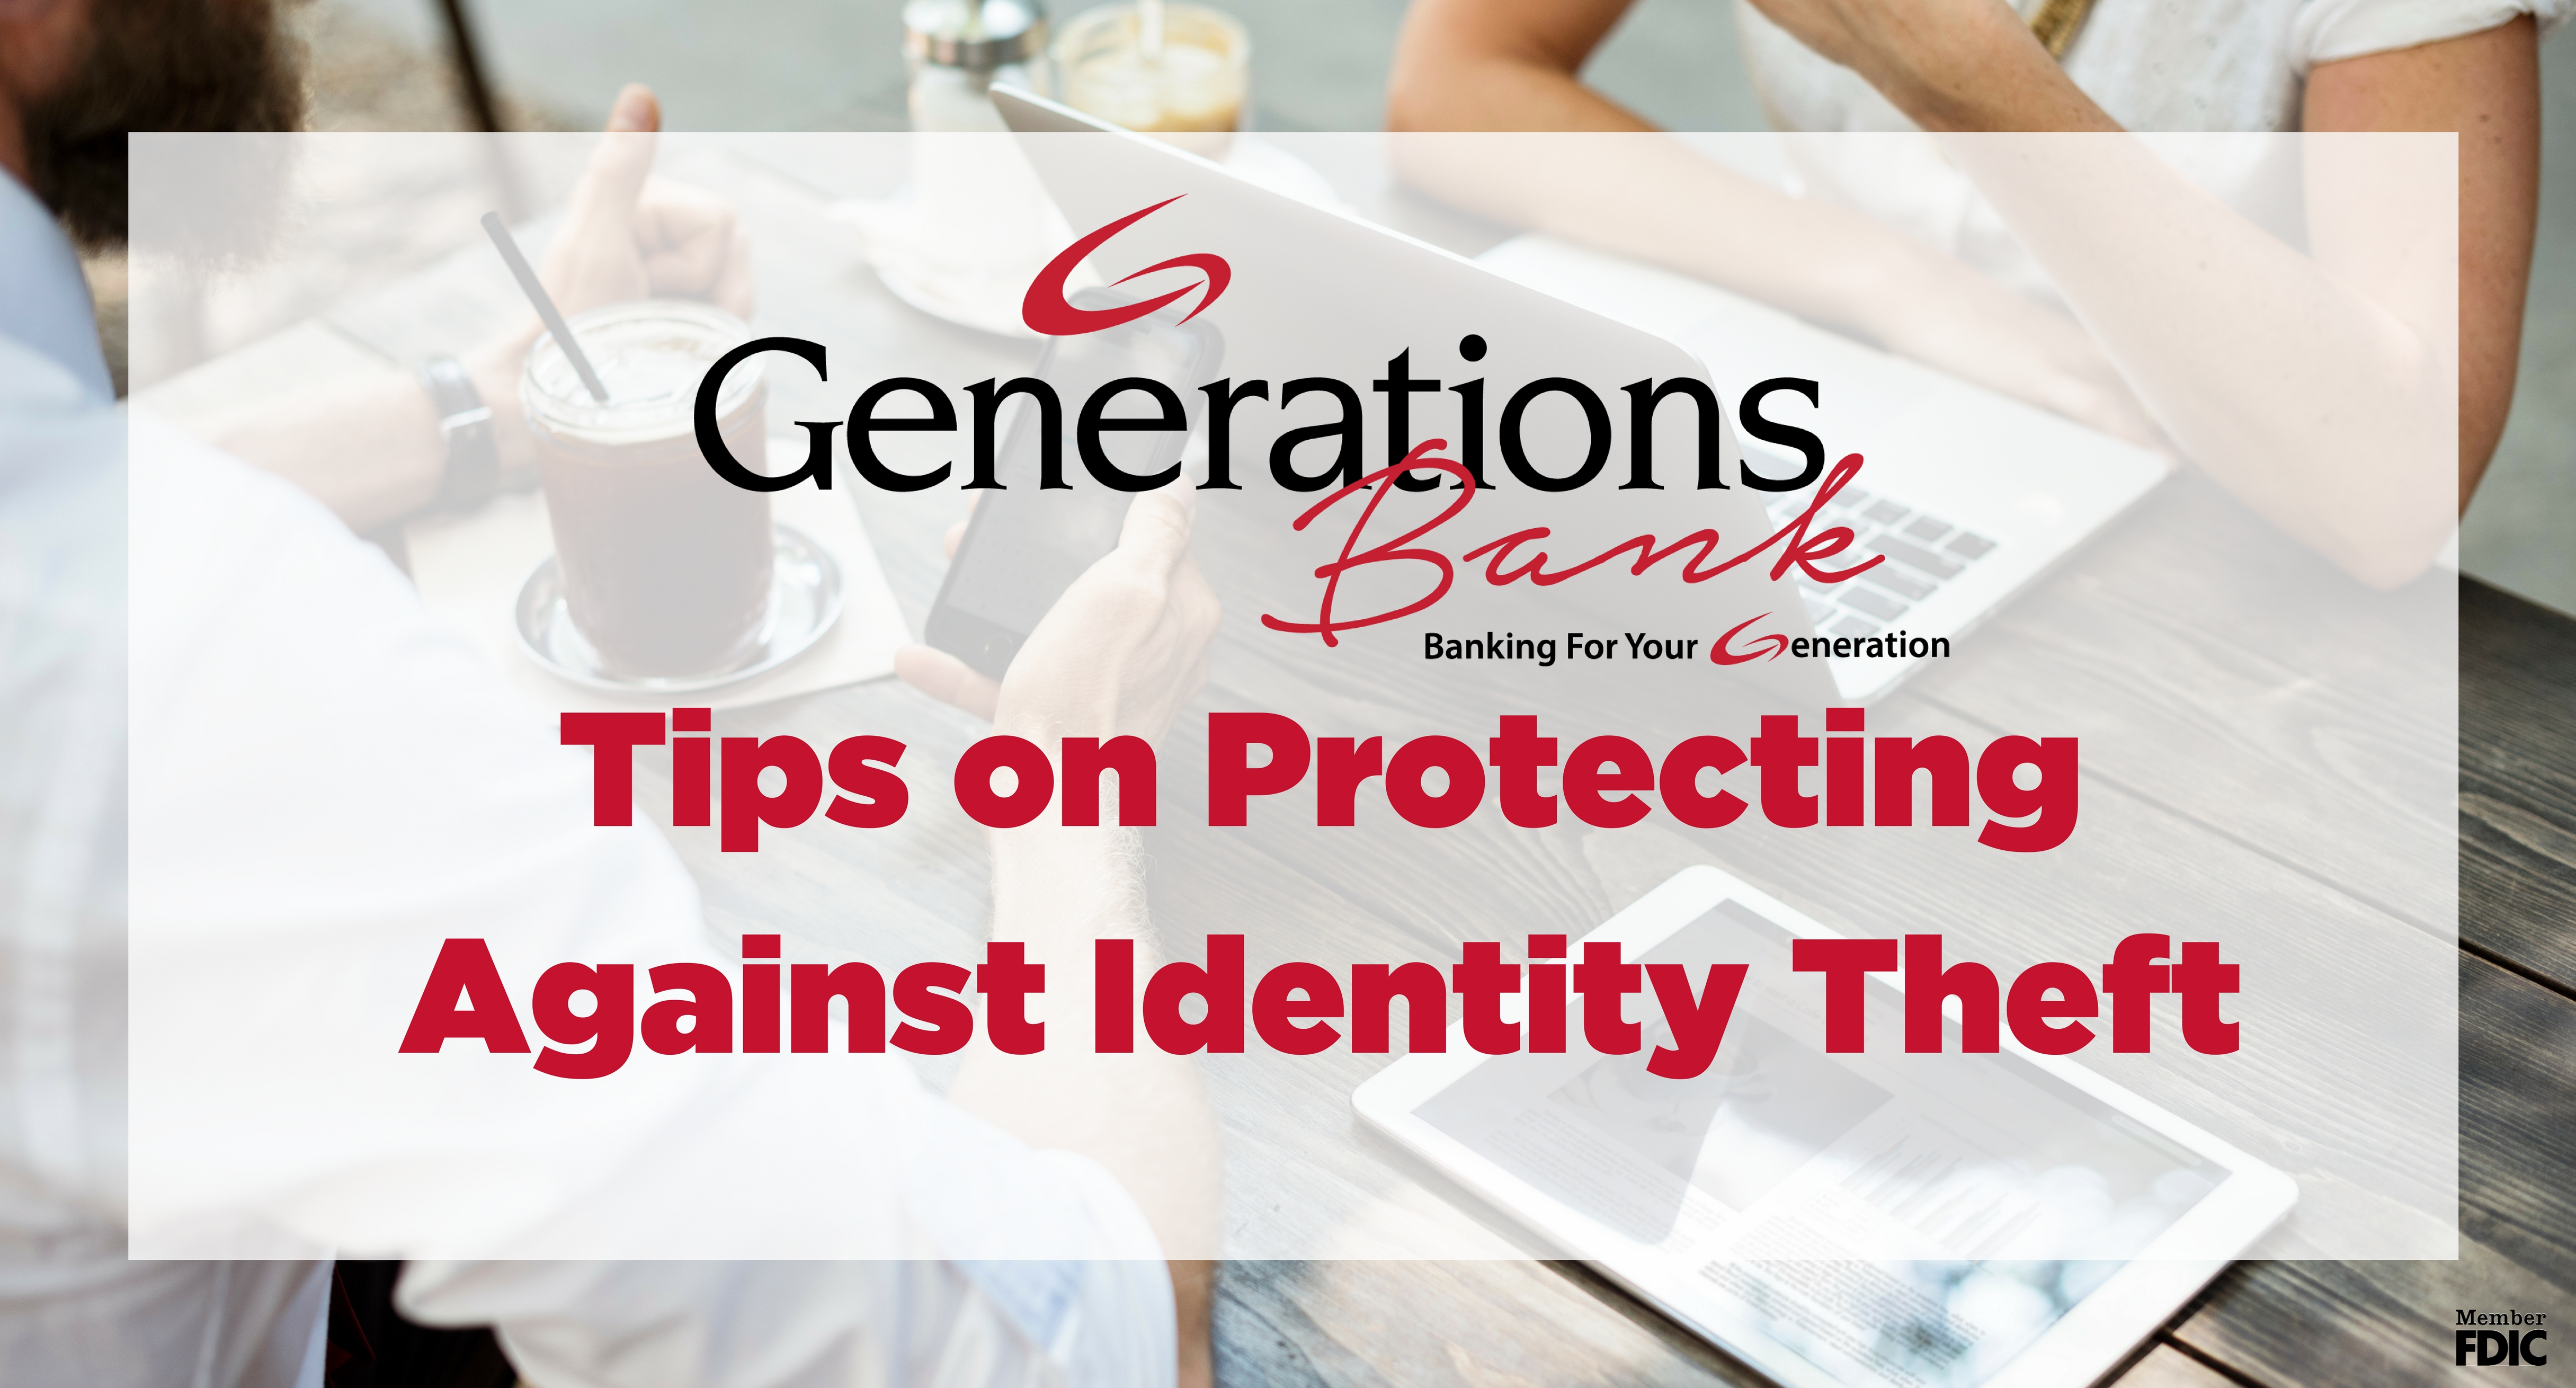 Protecting Against Identity Theft